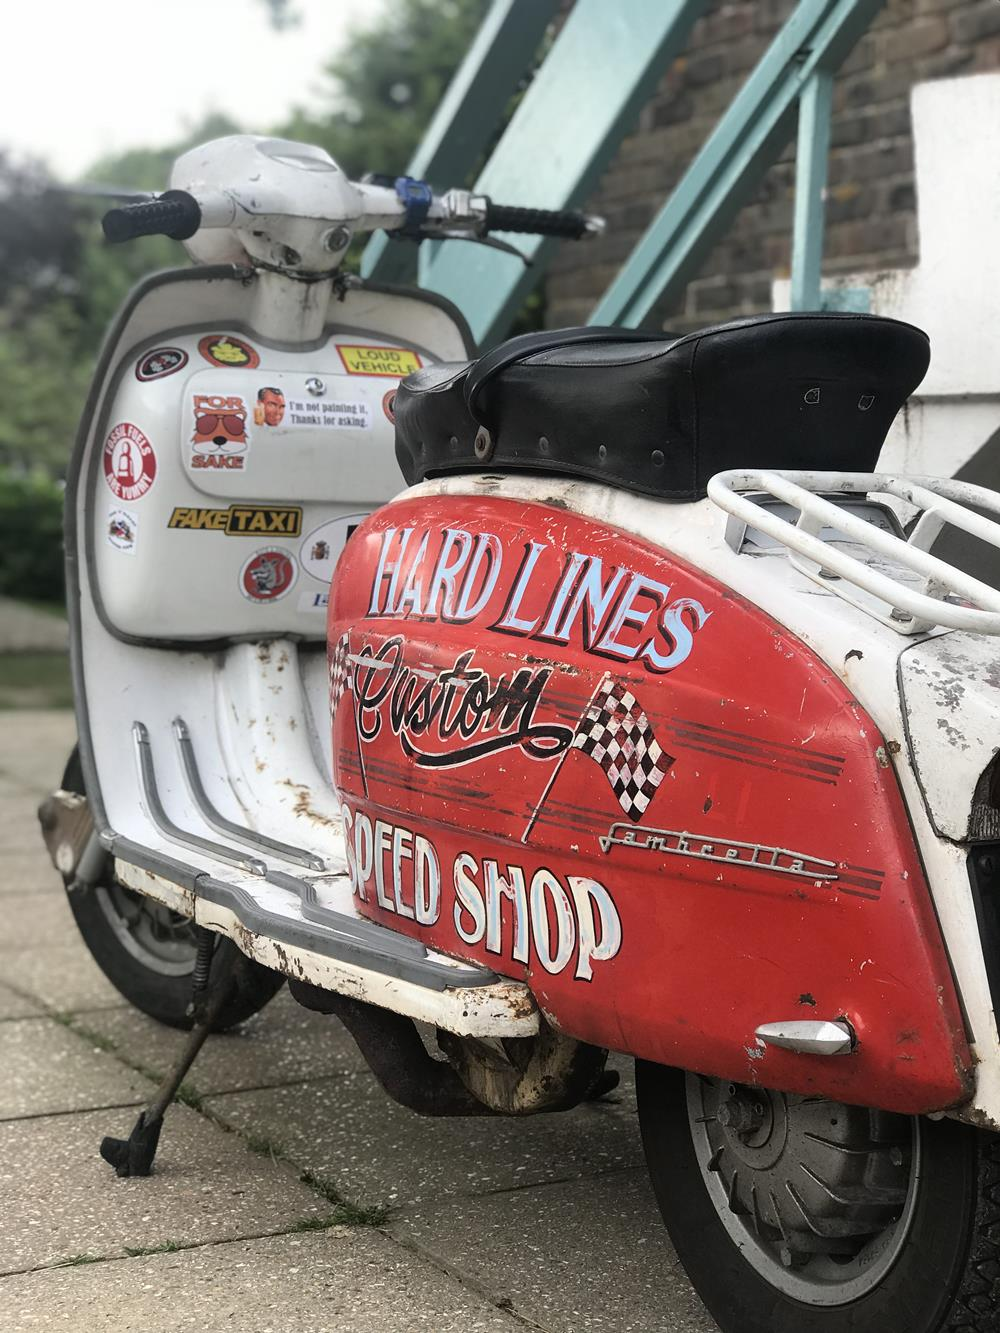 Hard Lines Custom Speed Shop signwriting on Lambretta side panel